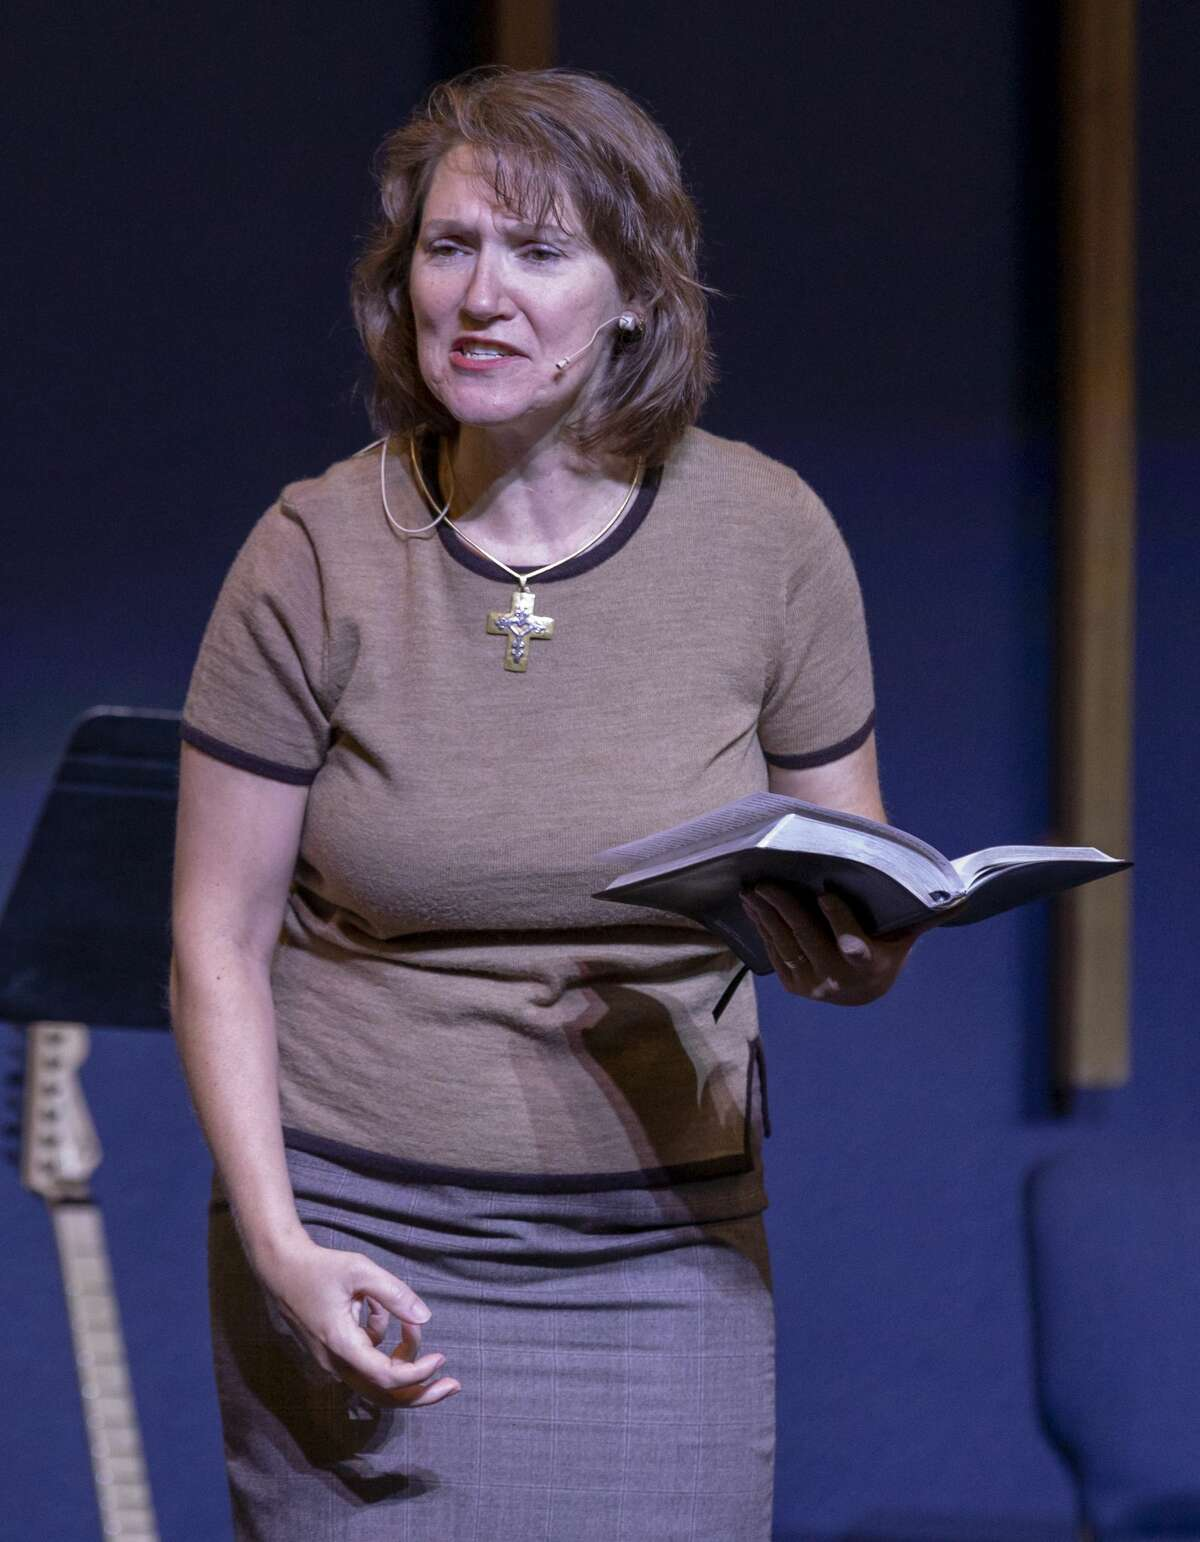 Co-pastor Dawn Weaks talks about the shooting -- that occurred yesterday -- during service Sunday, Sept. 1, 2019 at the Connection Christian Church Odessa.